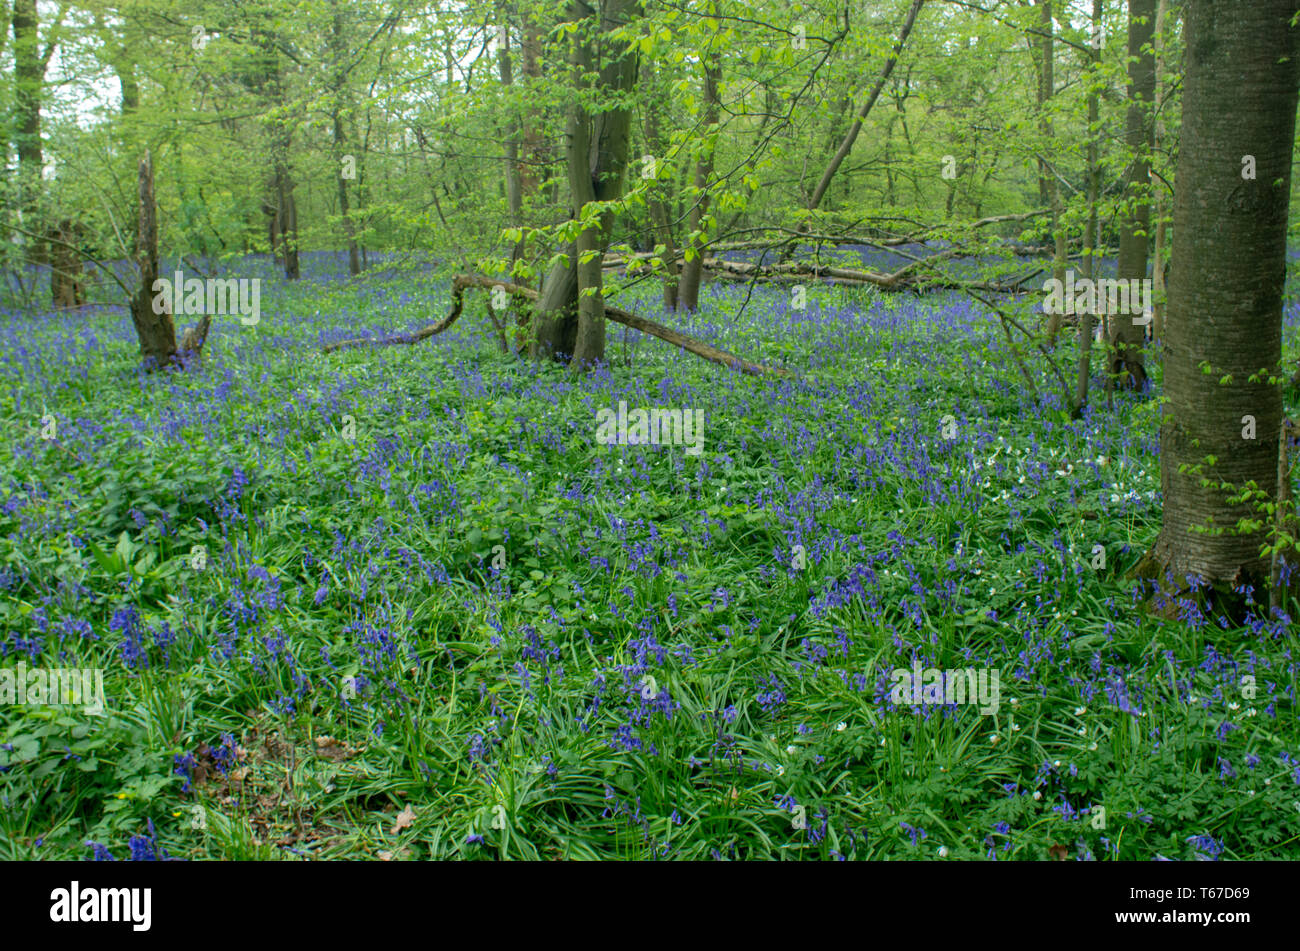 Bluebells form a blue carpet around the woodland trees - Stock Image